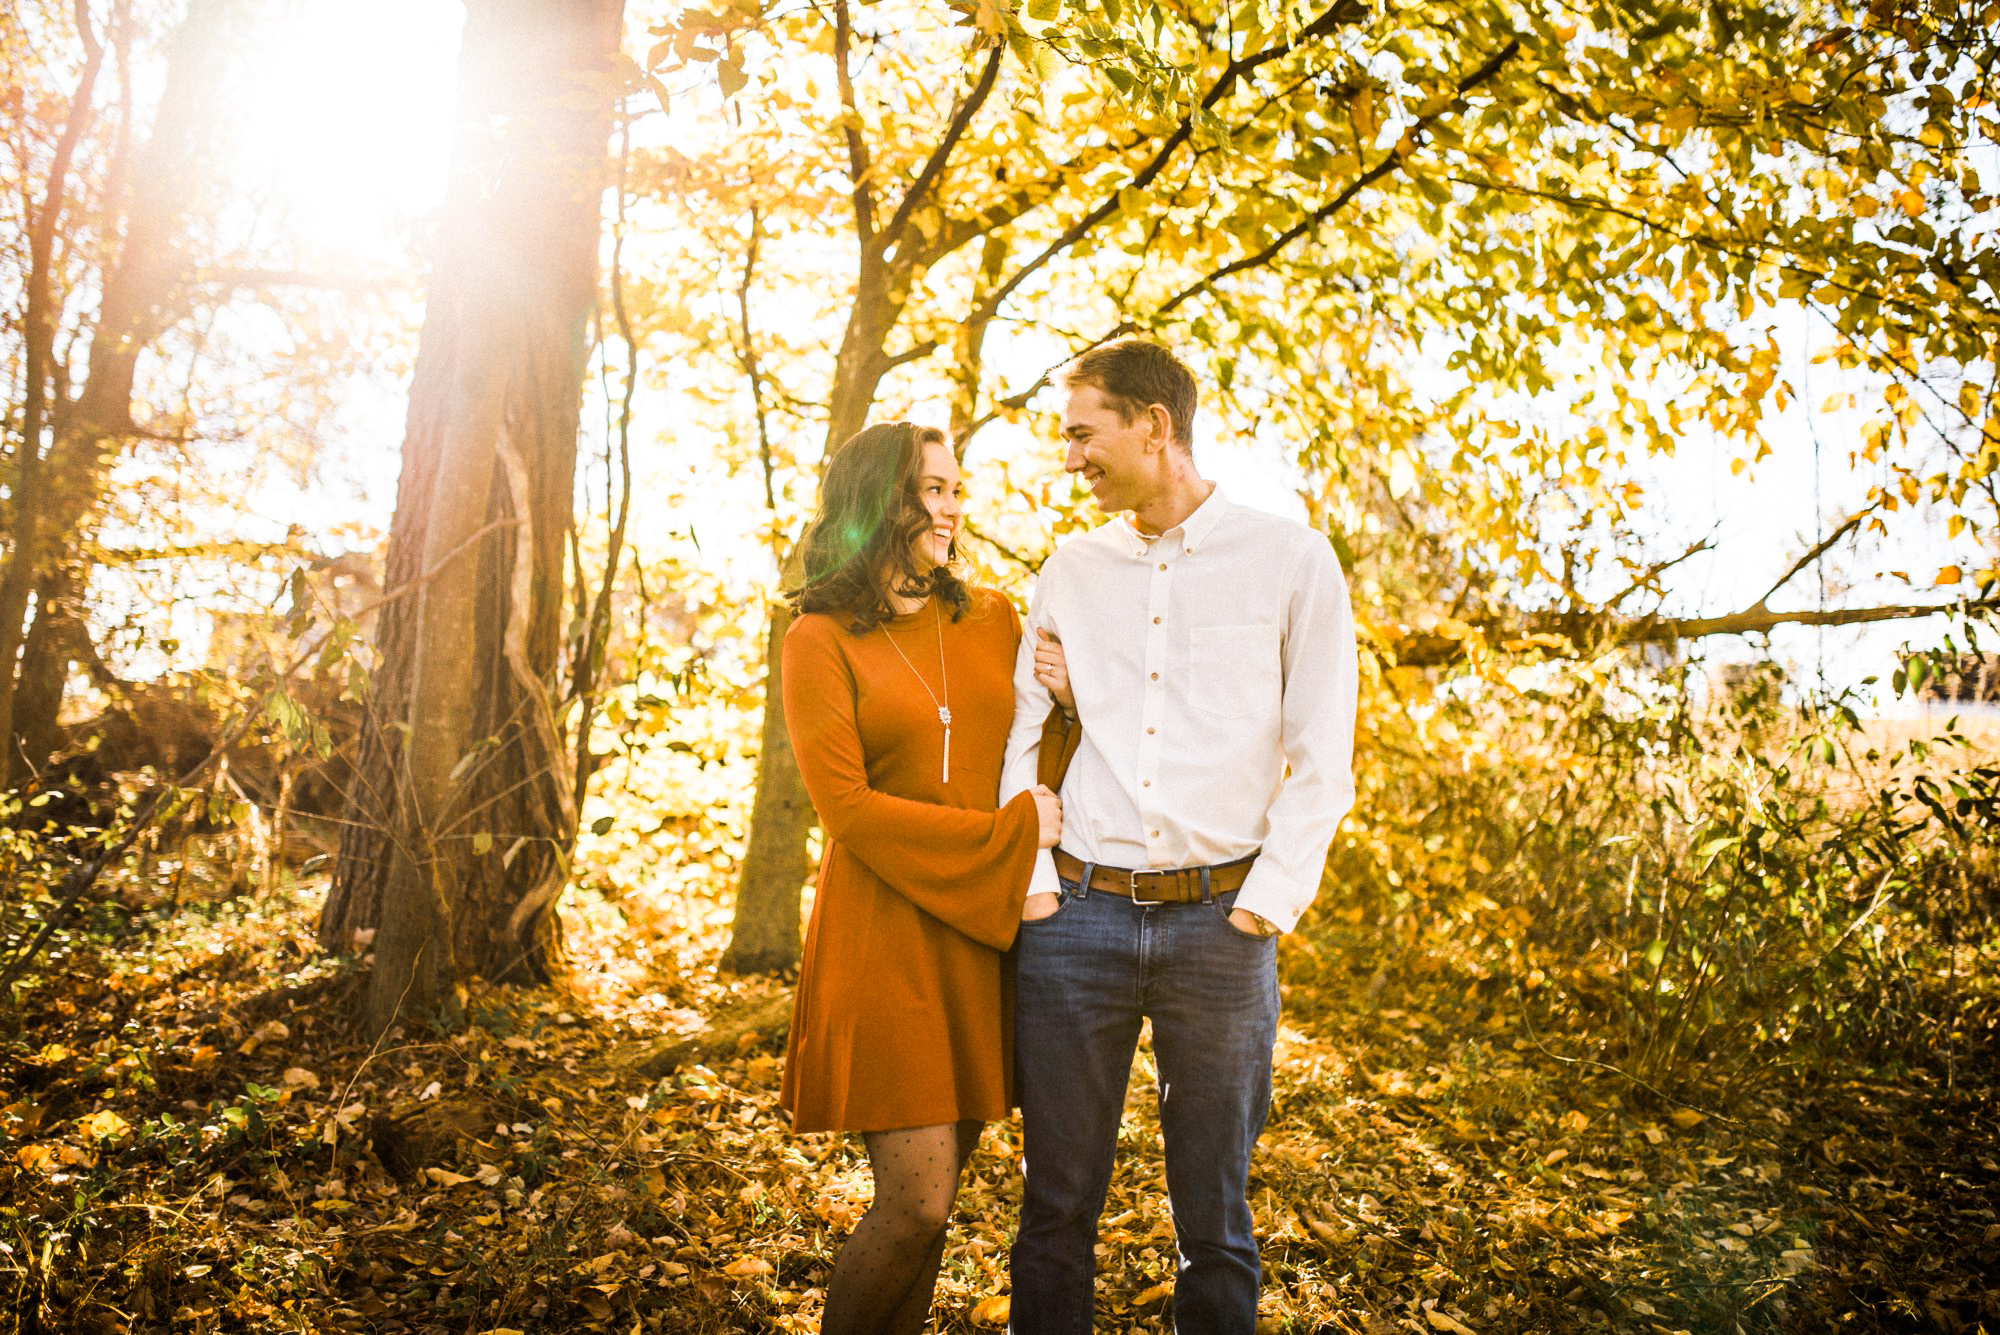 engagement-photography-88-love-stories_0005.jpg